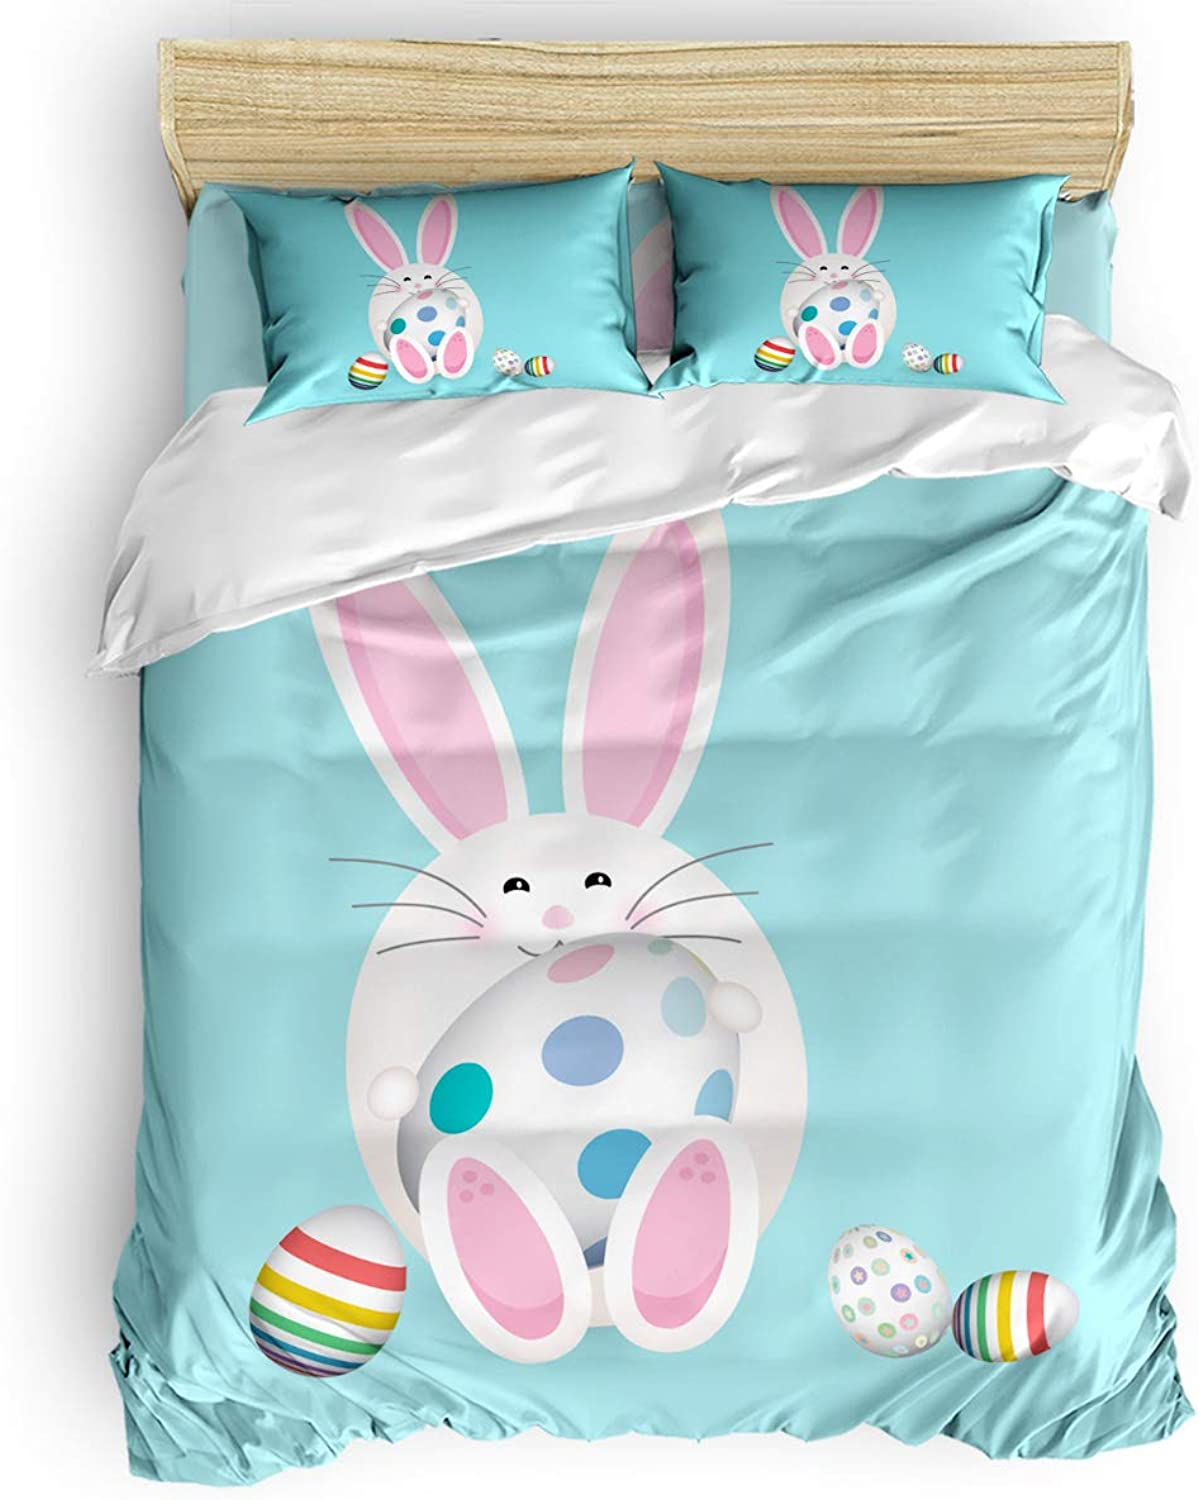 4 Pieces Bed Sheets Set Twin Size, Cute Cartoon Rabbit Bunny and colorful Eggs 3D Print Floral Duvet Cover Set